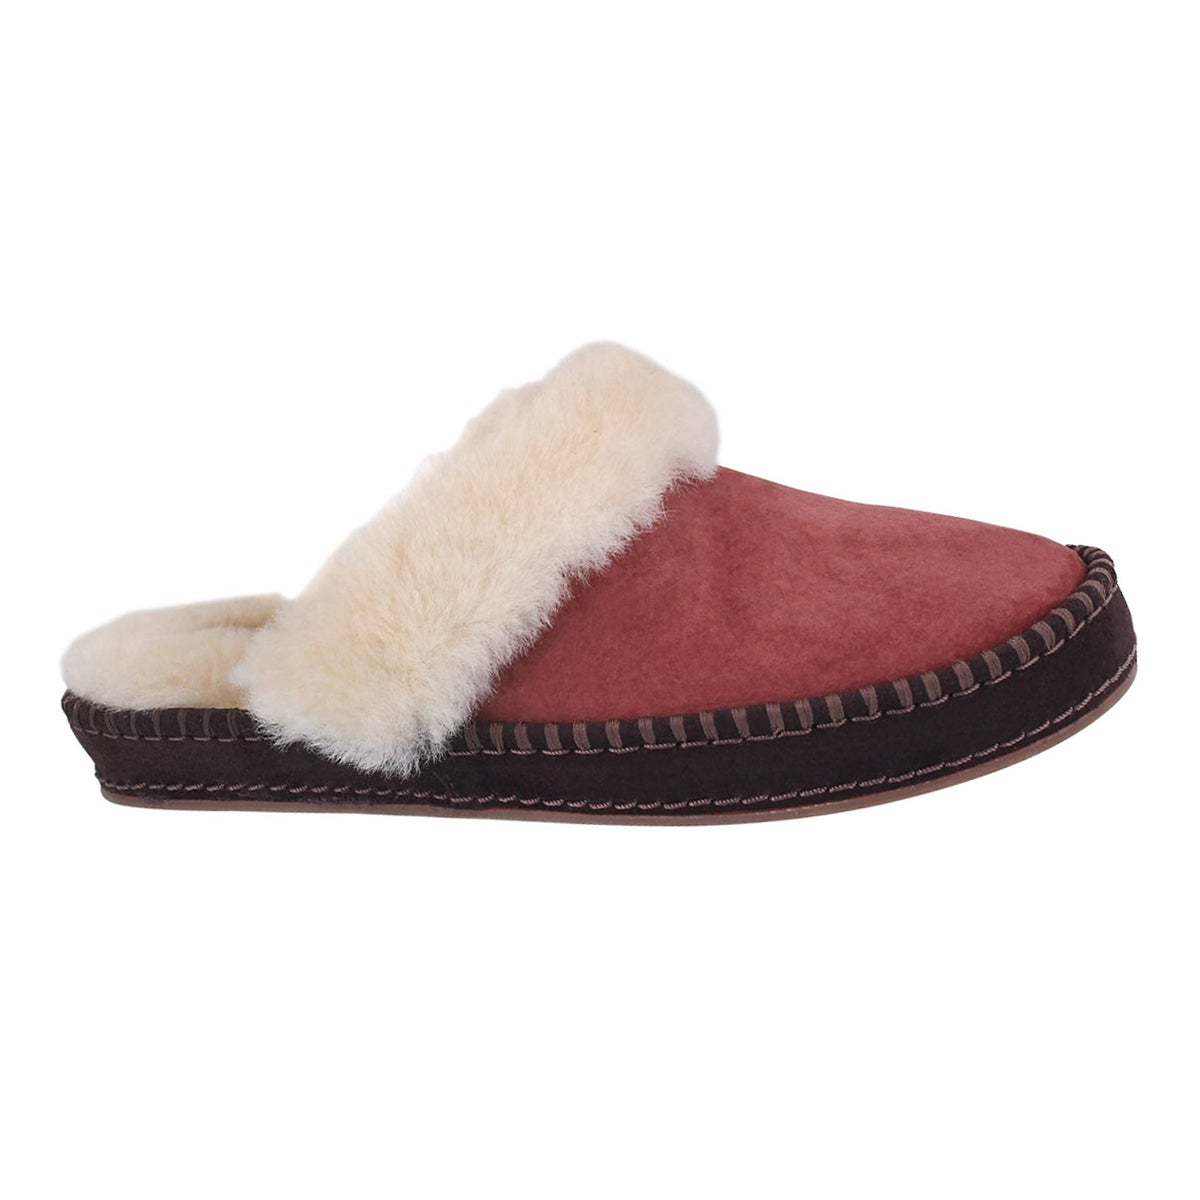 Women's AIRA red clay slippers